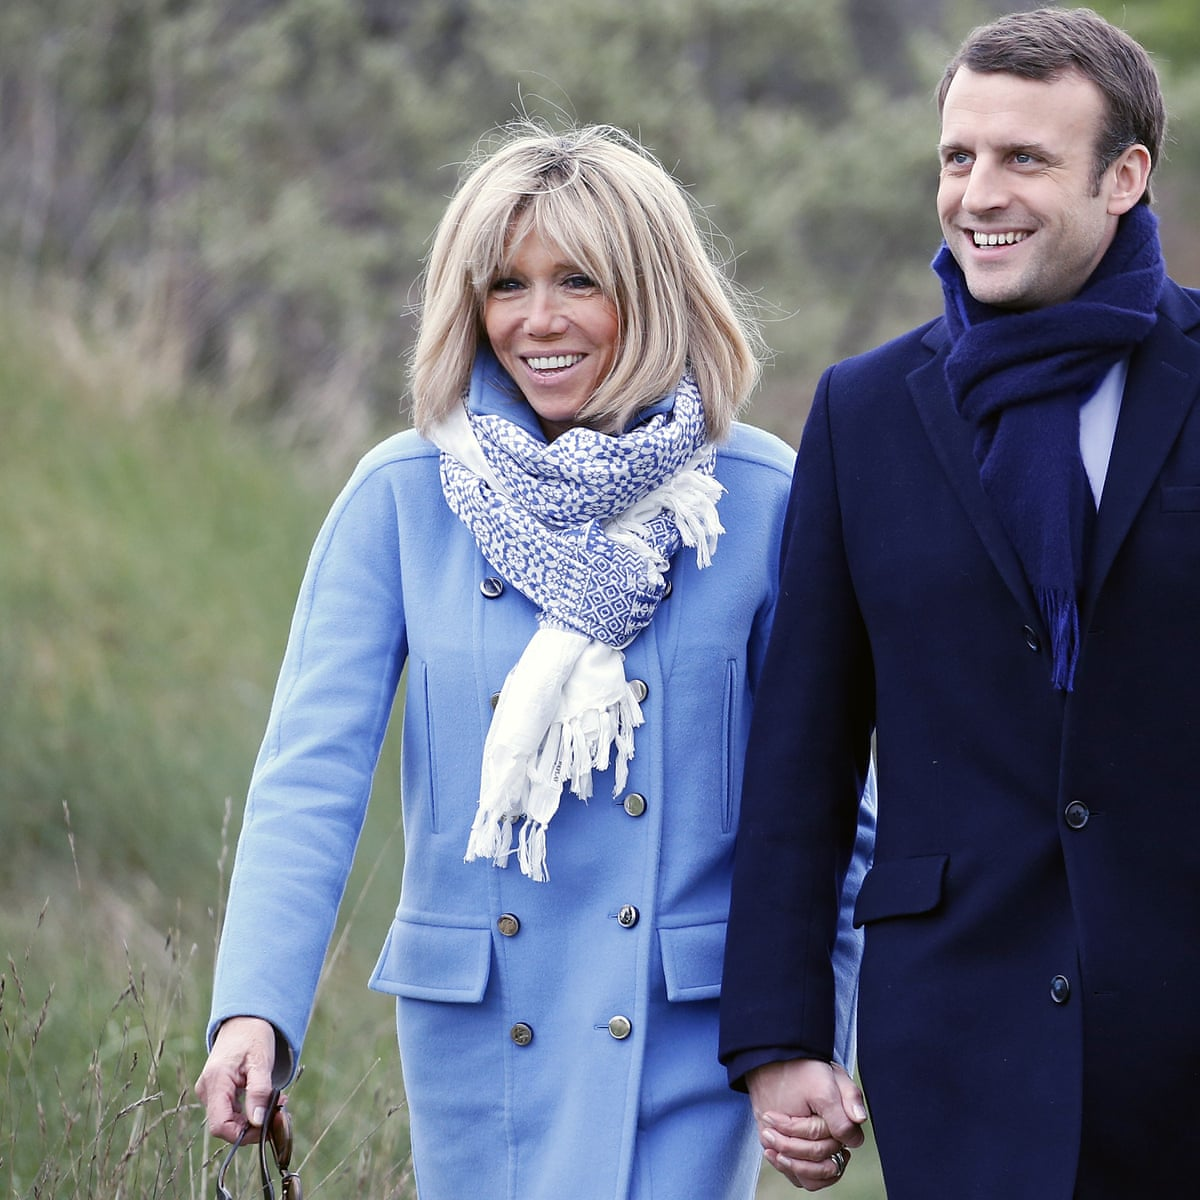 Ditch The Outrage Over Macron S Marriage Age Gap We All Have Fascists To Fight Emmanuel Macron The Guardian